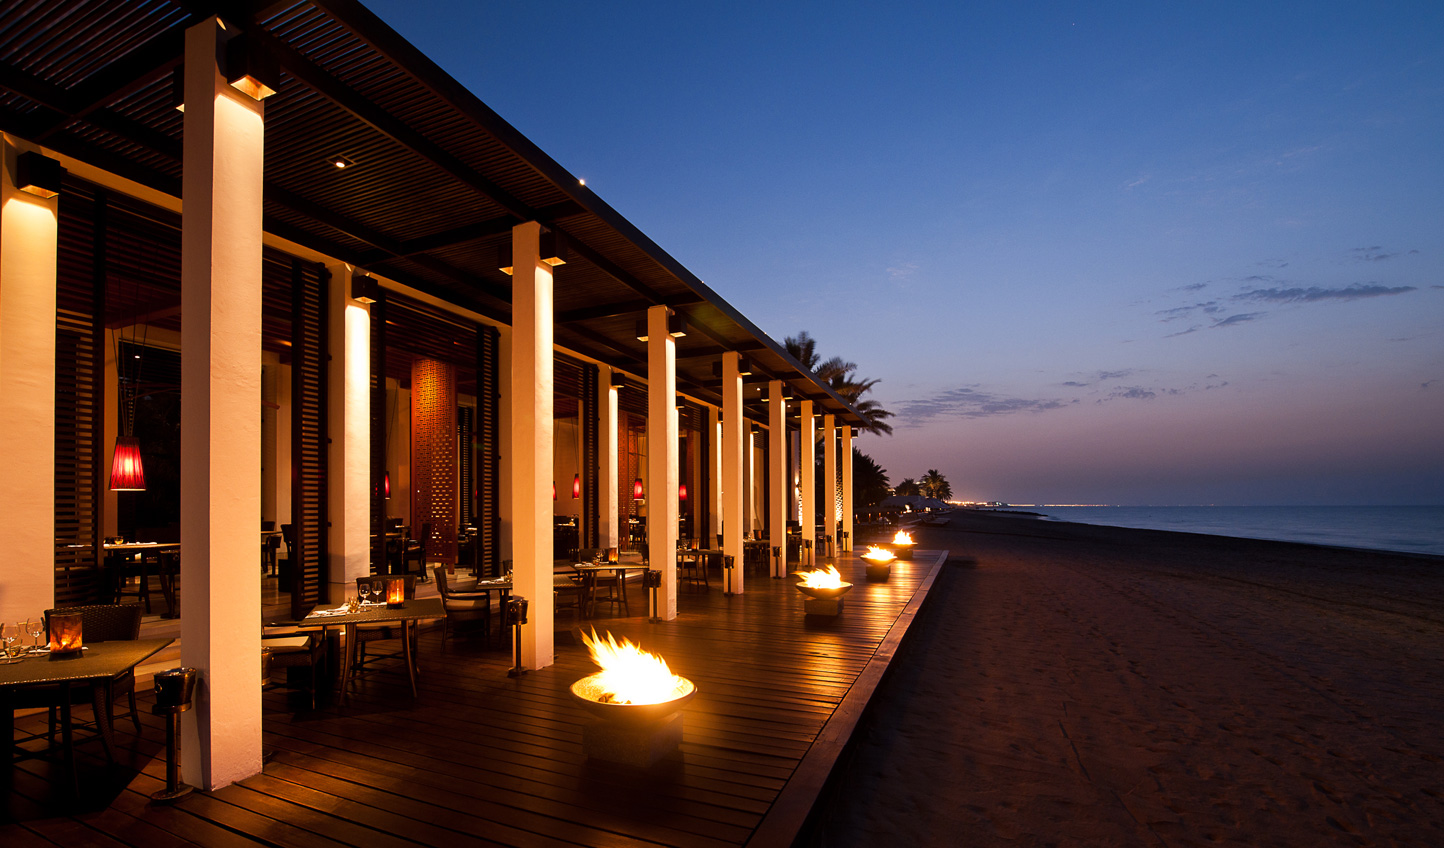 Dine on fresh seafood and feel the sea breeze on your skin